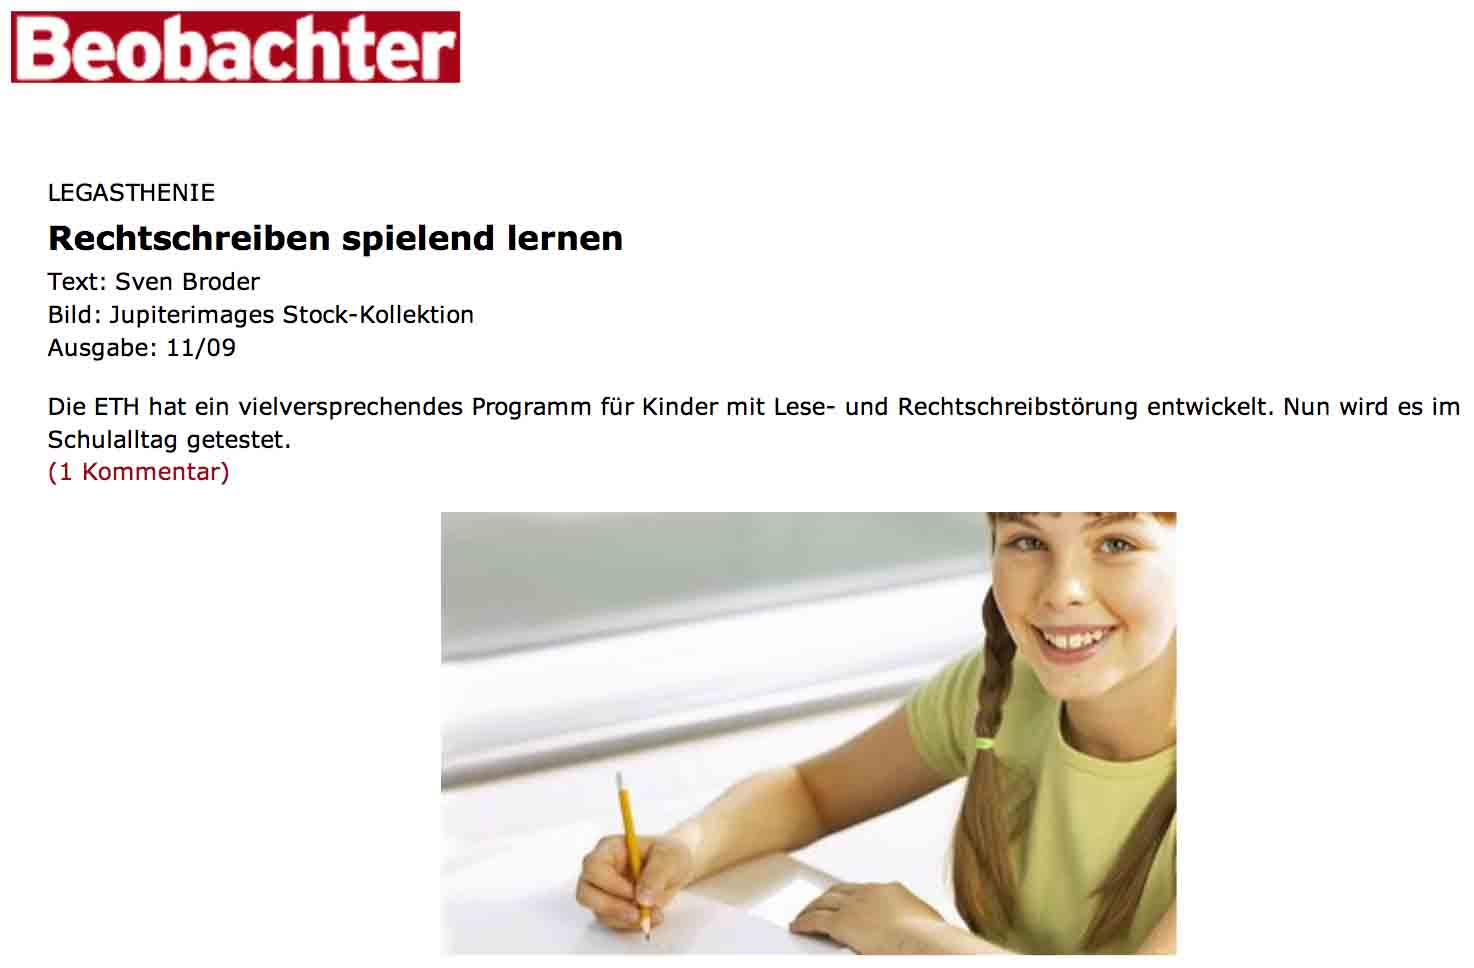 Beobachter_2009